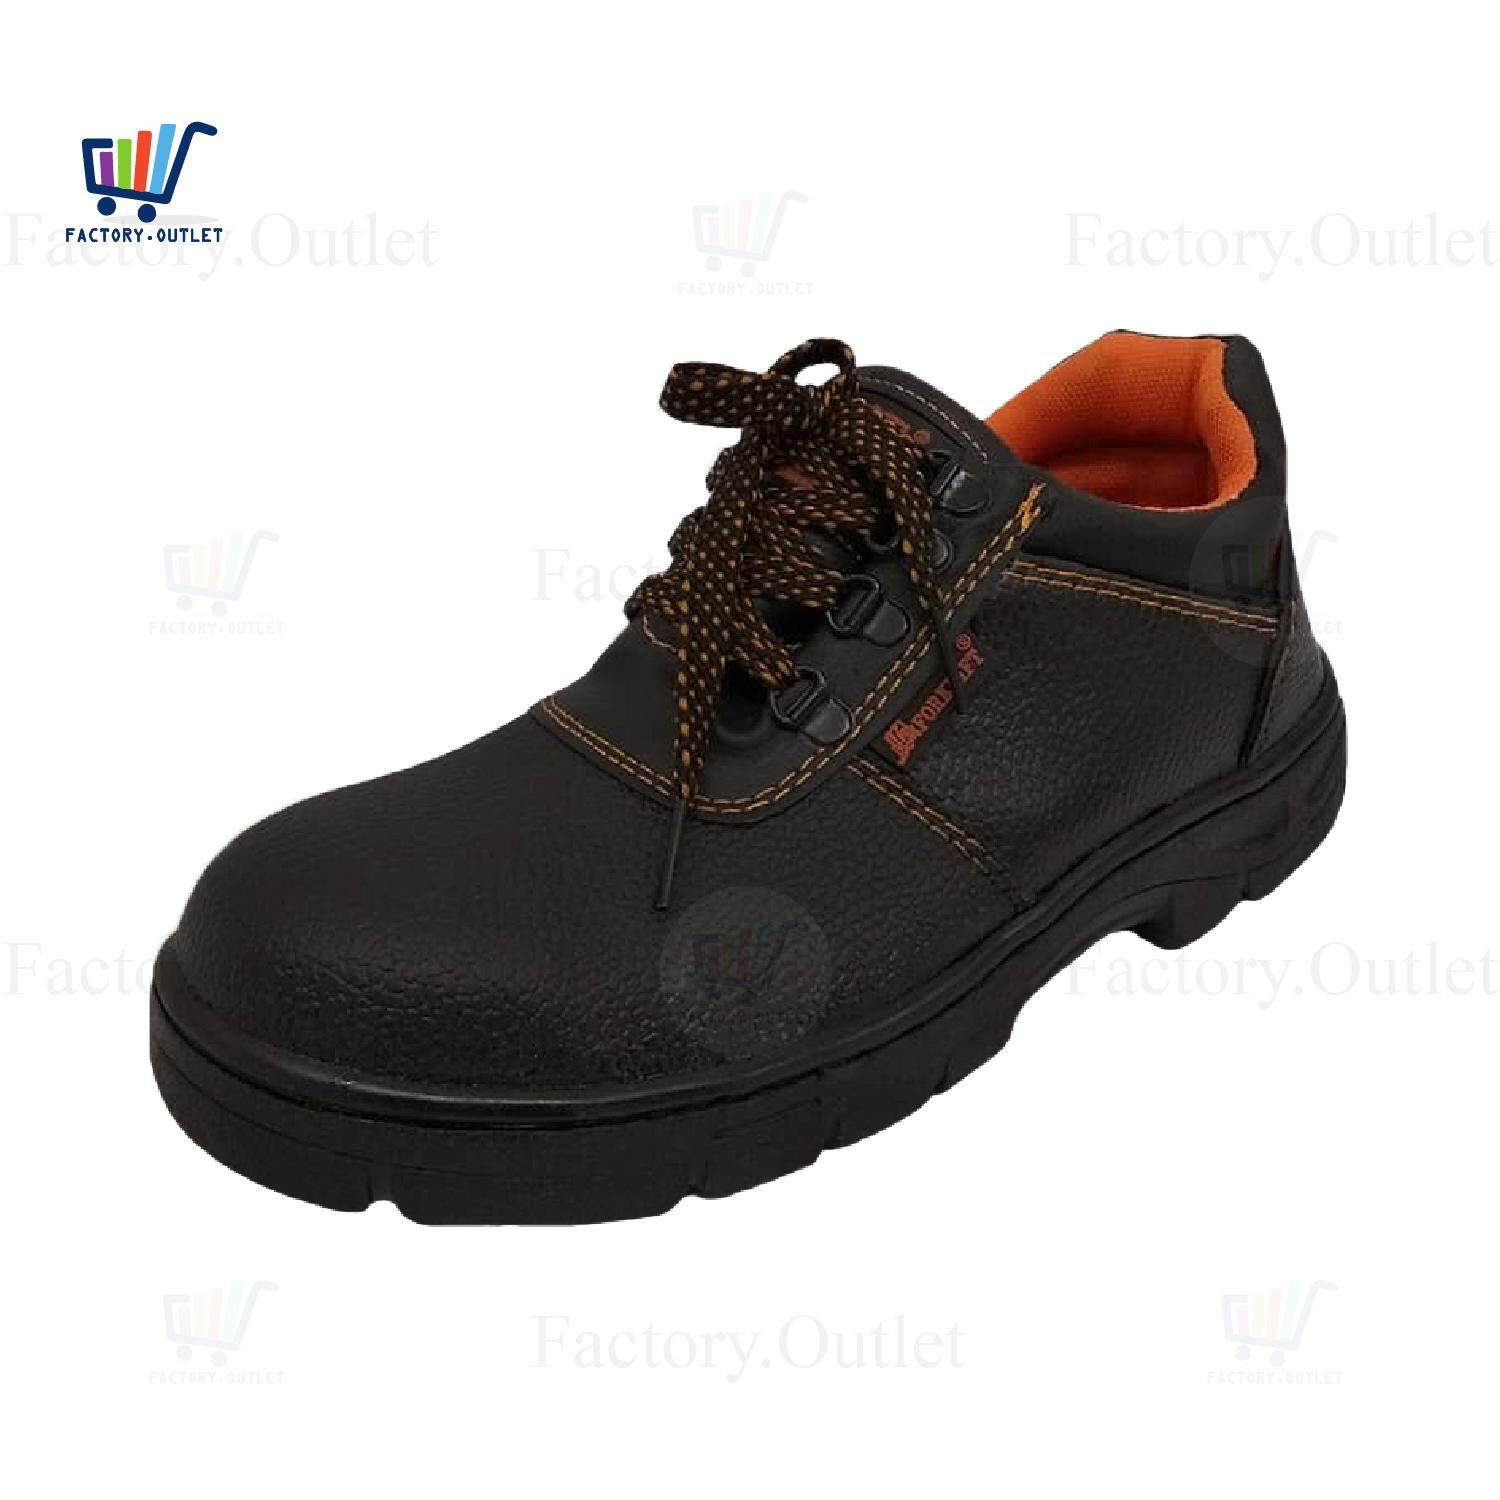 03662cce0f1 Safety Boot Shoe Low Cut Safety Boot Forklift